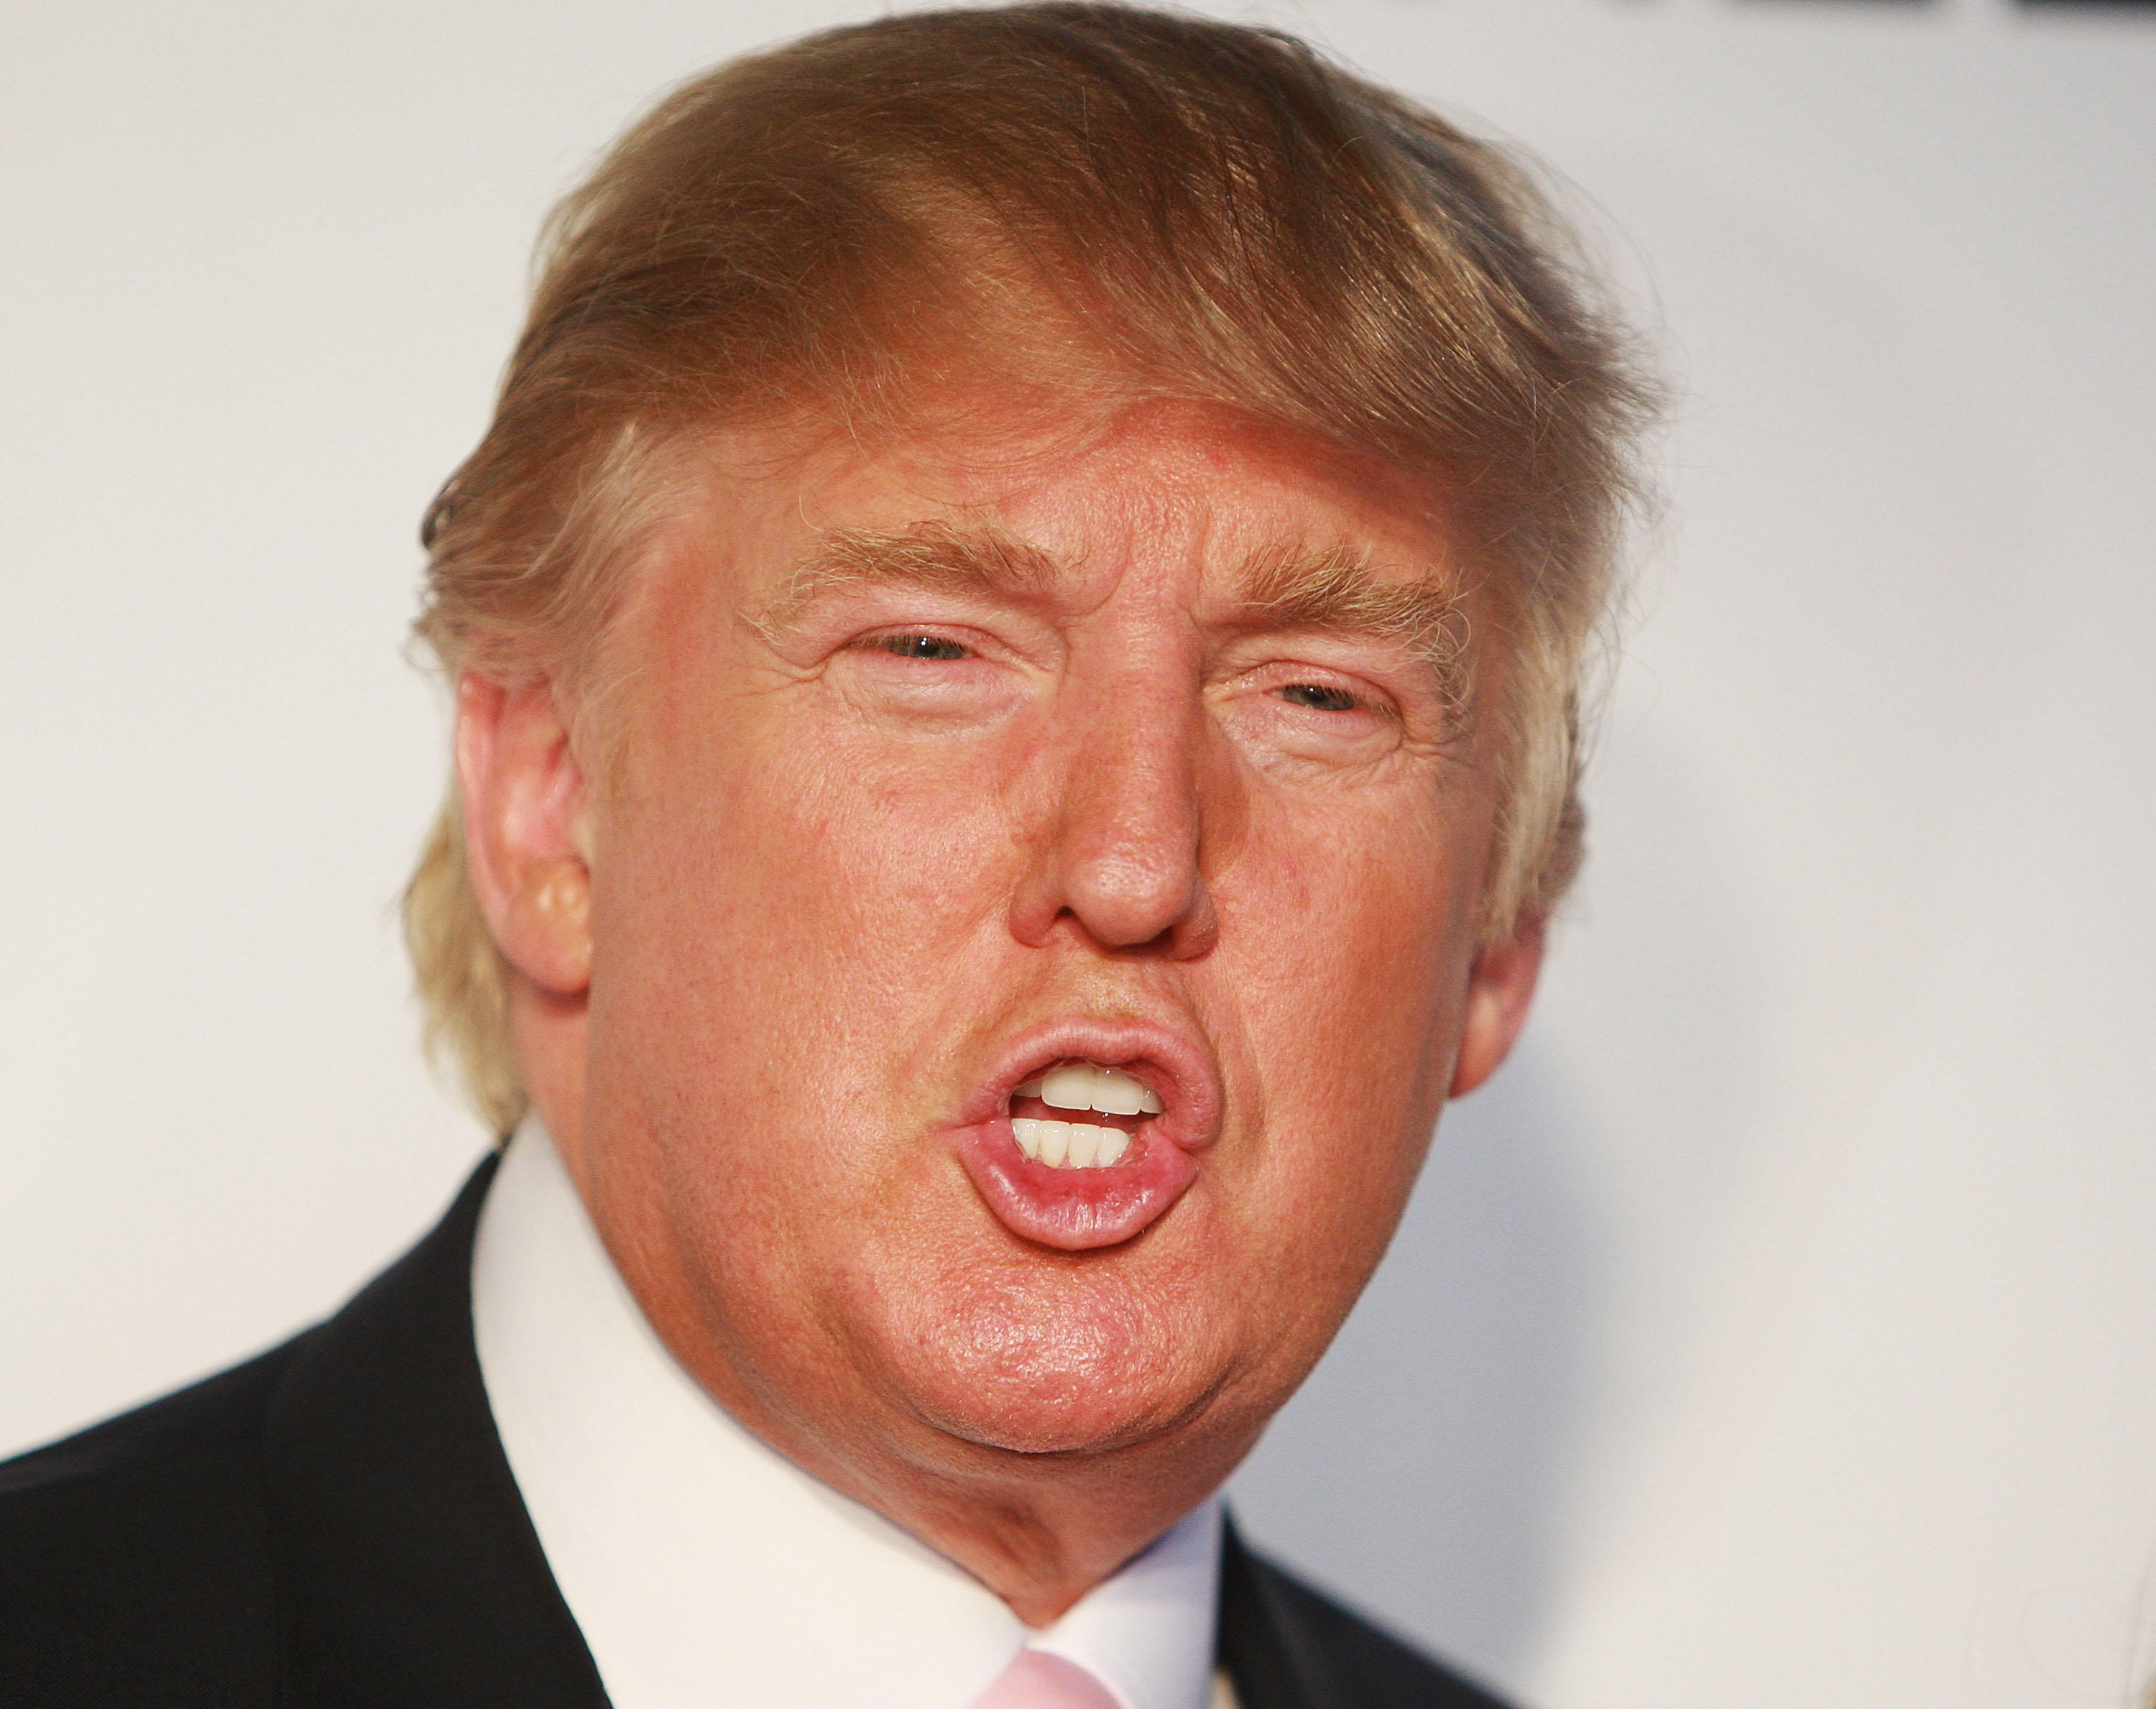 Donald Trump to announce Presidential bid on June 16th.